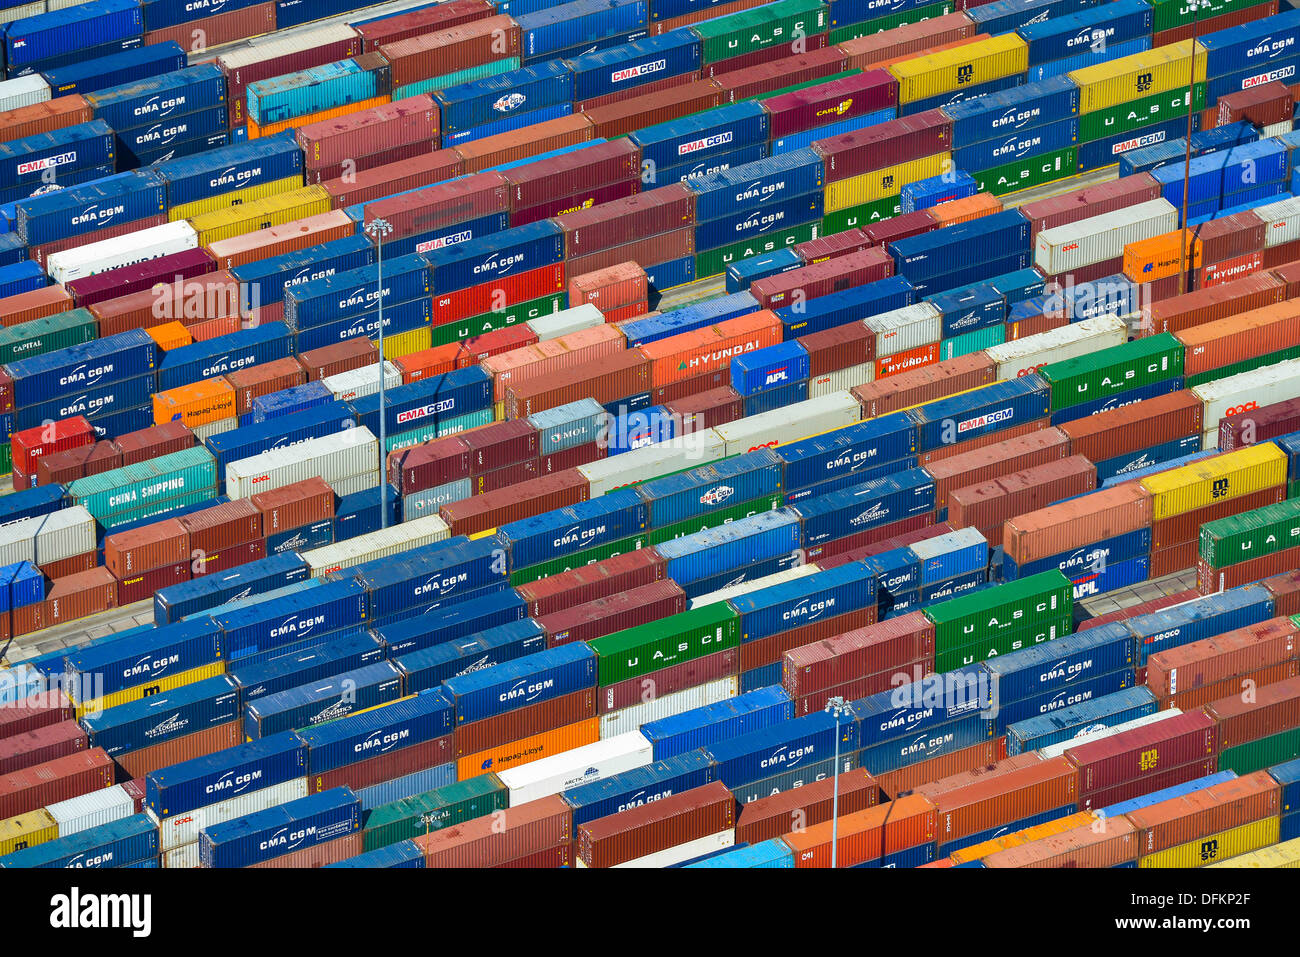 Aerial photograph of shipping containers at Southampton docks - Stock Image